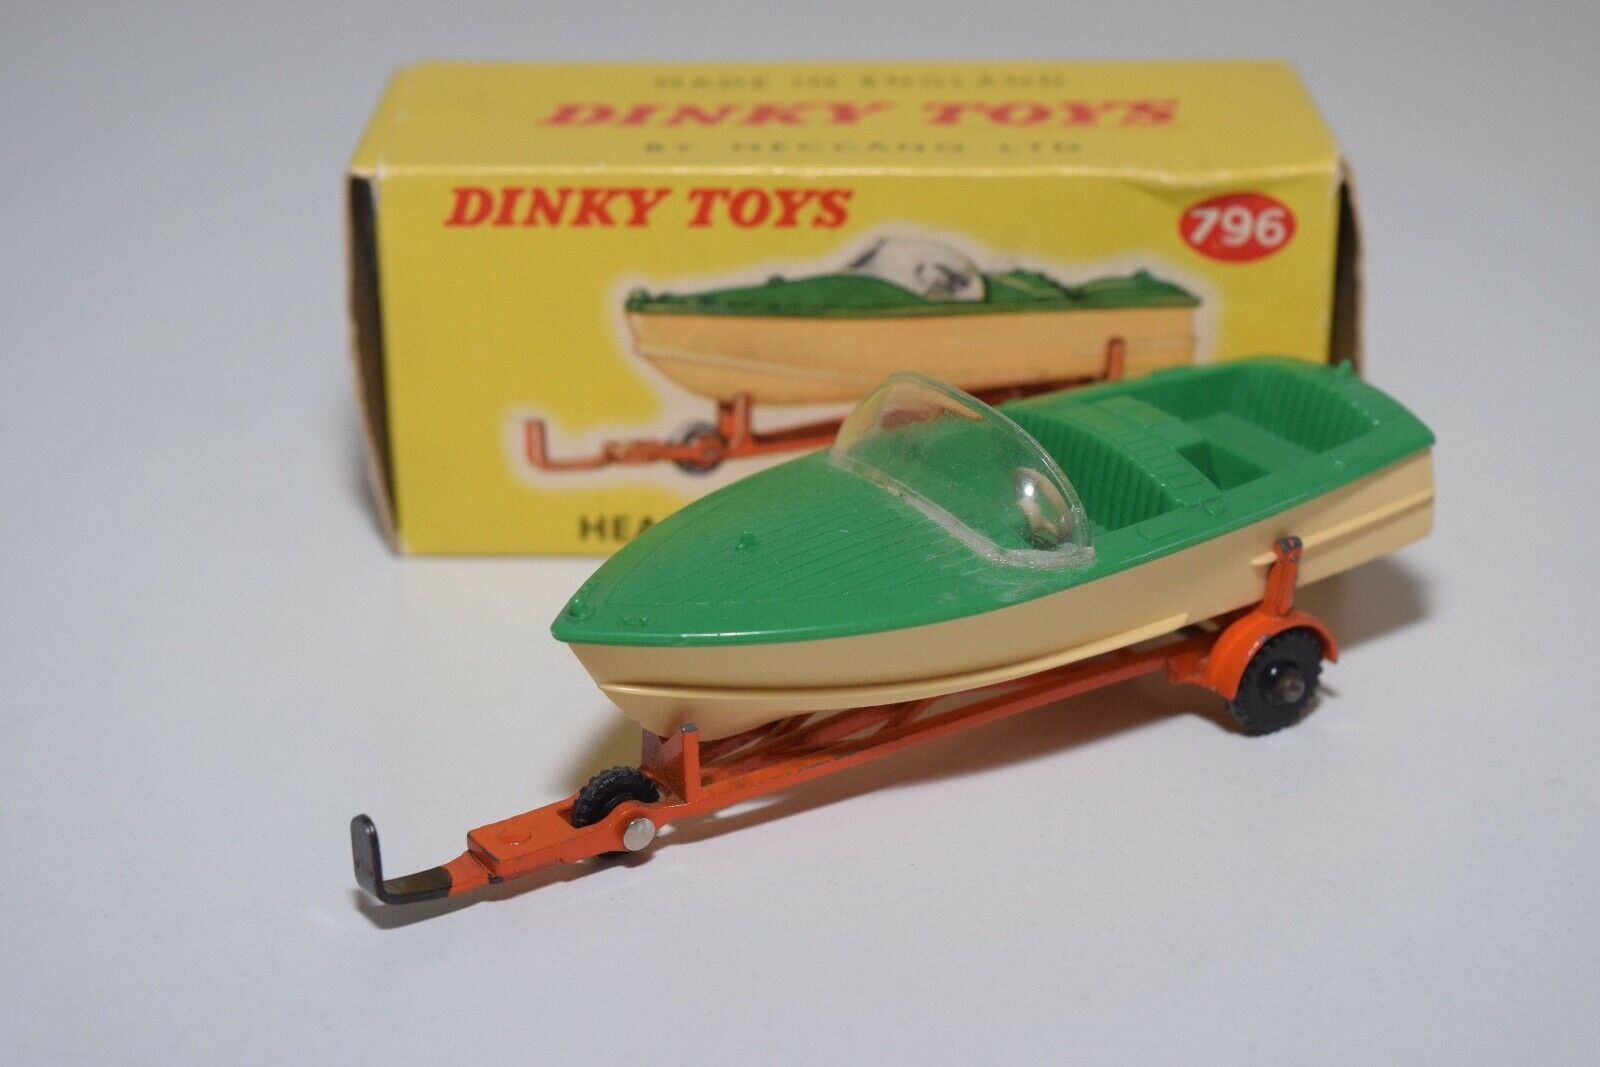 DD 1 43 DINKY TOYS 796 HEALEY SPORTS BOAT ON TRAILER verde NEAR MINT BOXED